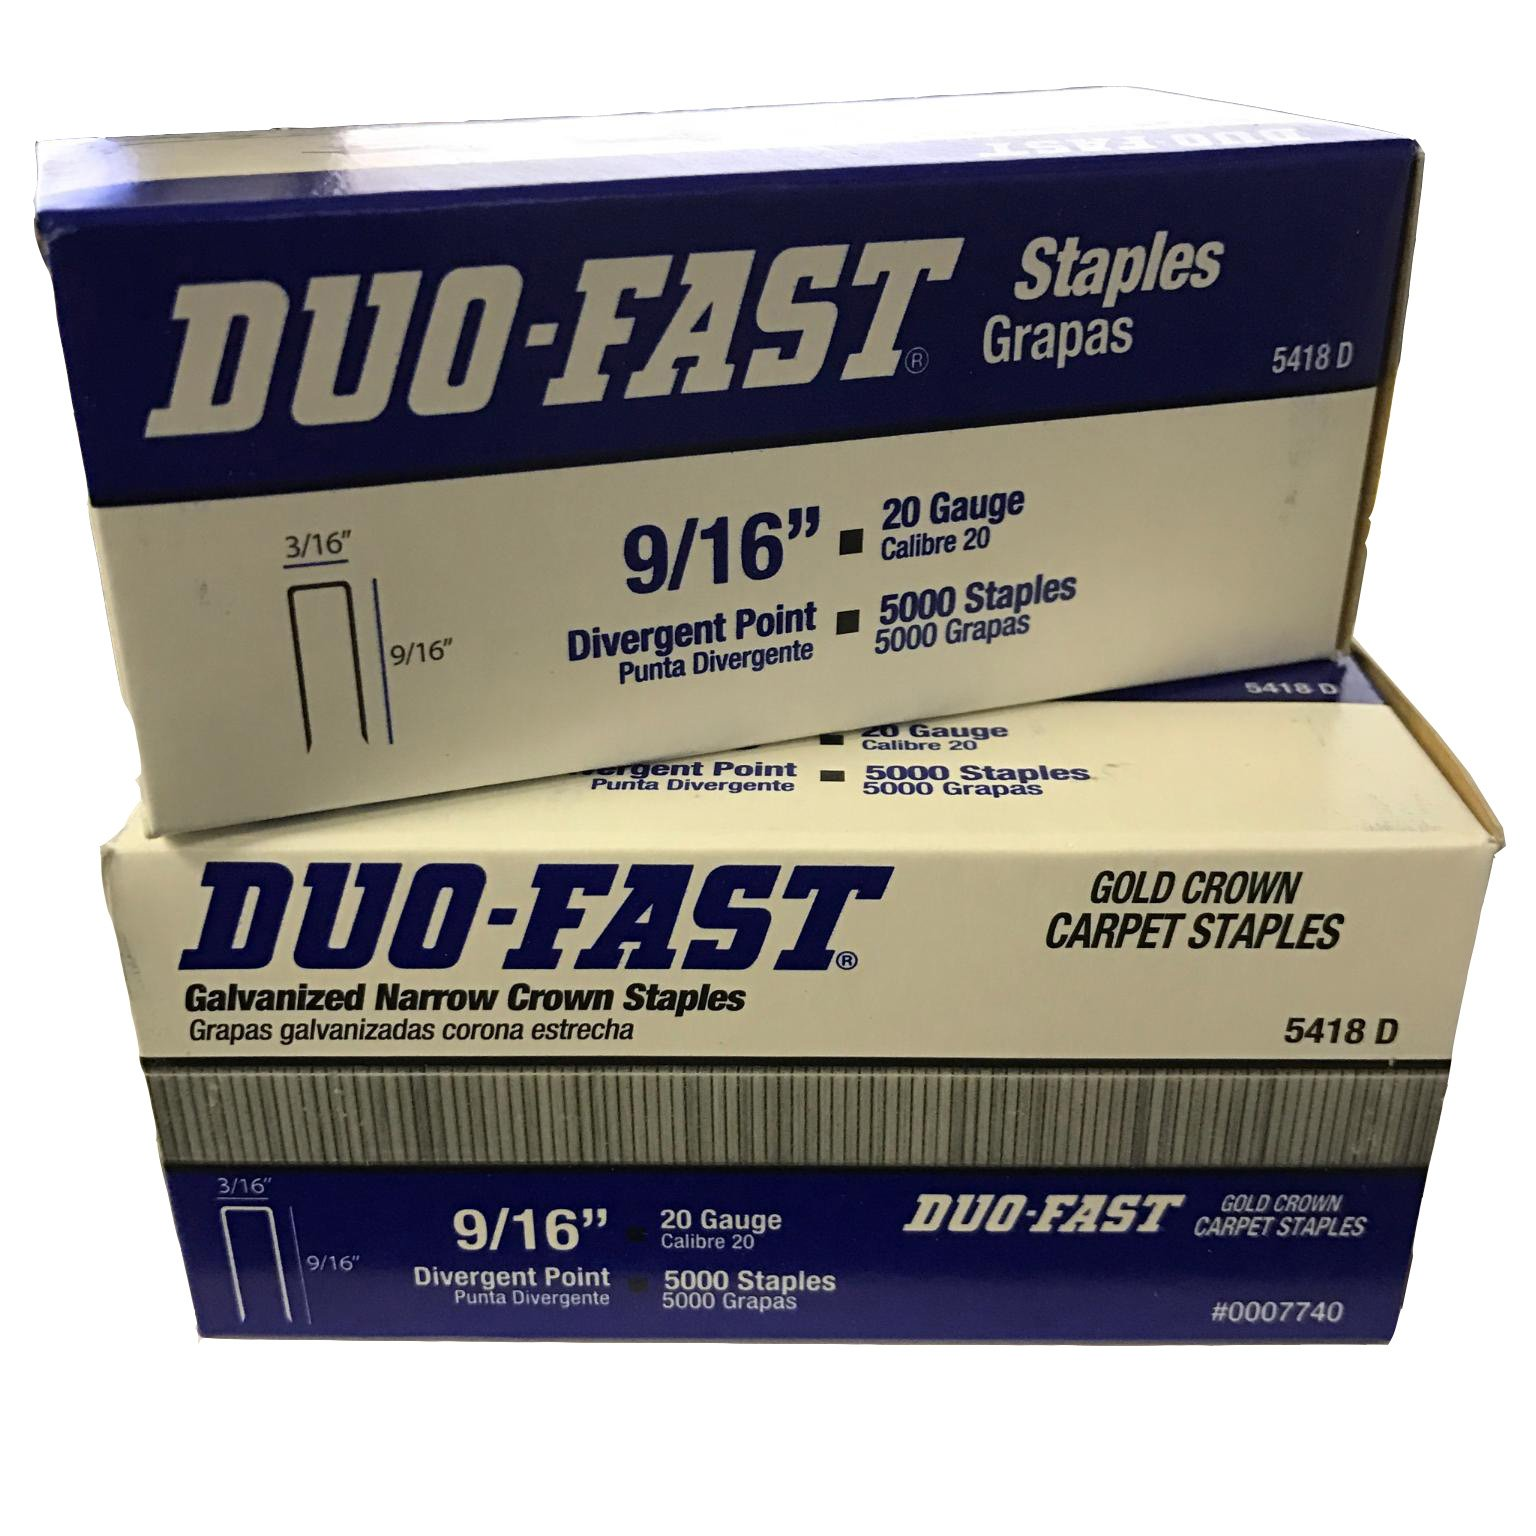 Duo-Fast 5418D 9/16-Inch by 20 Gauge 3/16 Crown Gold Staples (5,000 per Box) - Pack of 2 Boxes by Duo-Fast